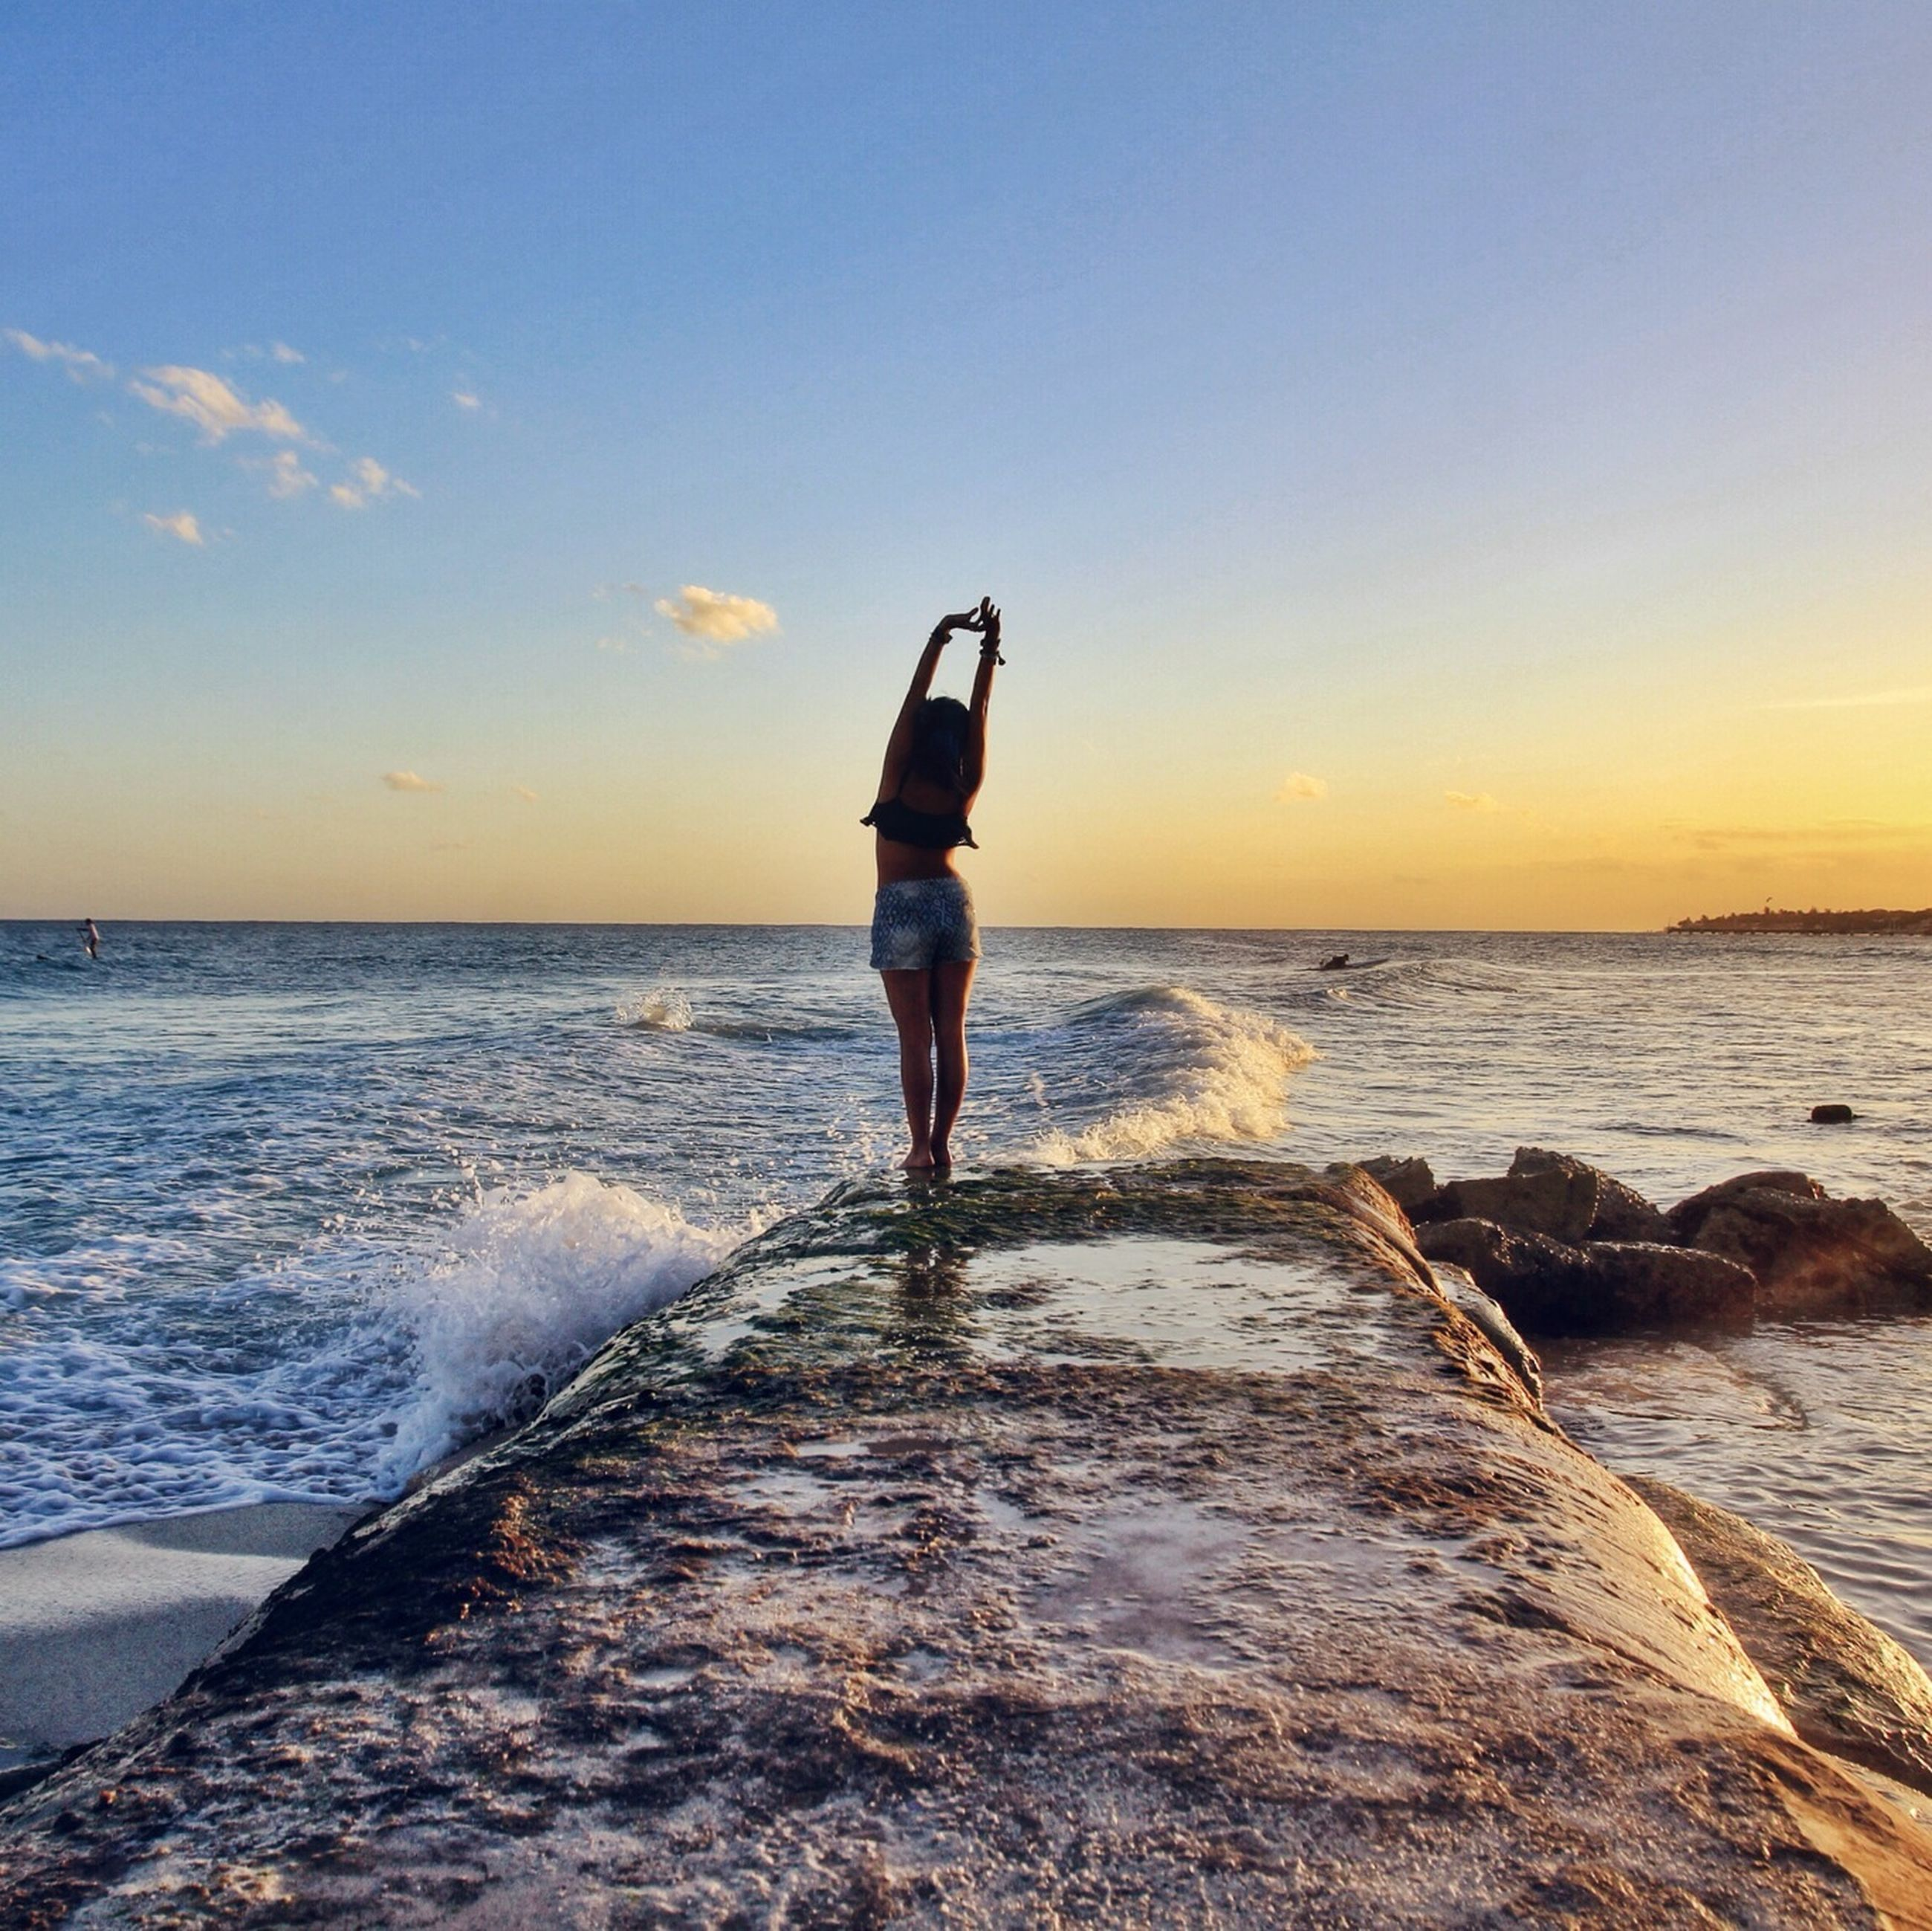 sea, water, full length, lifestyles, rear view, standing, leisure activity, horizon over water, beach, sky, sunset, scenics, tranquil scene, beauty in nature, tranquility, shore, casual clothing, walking